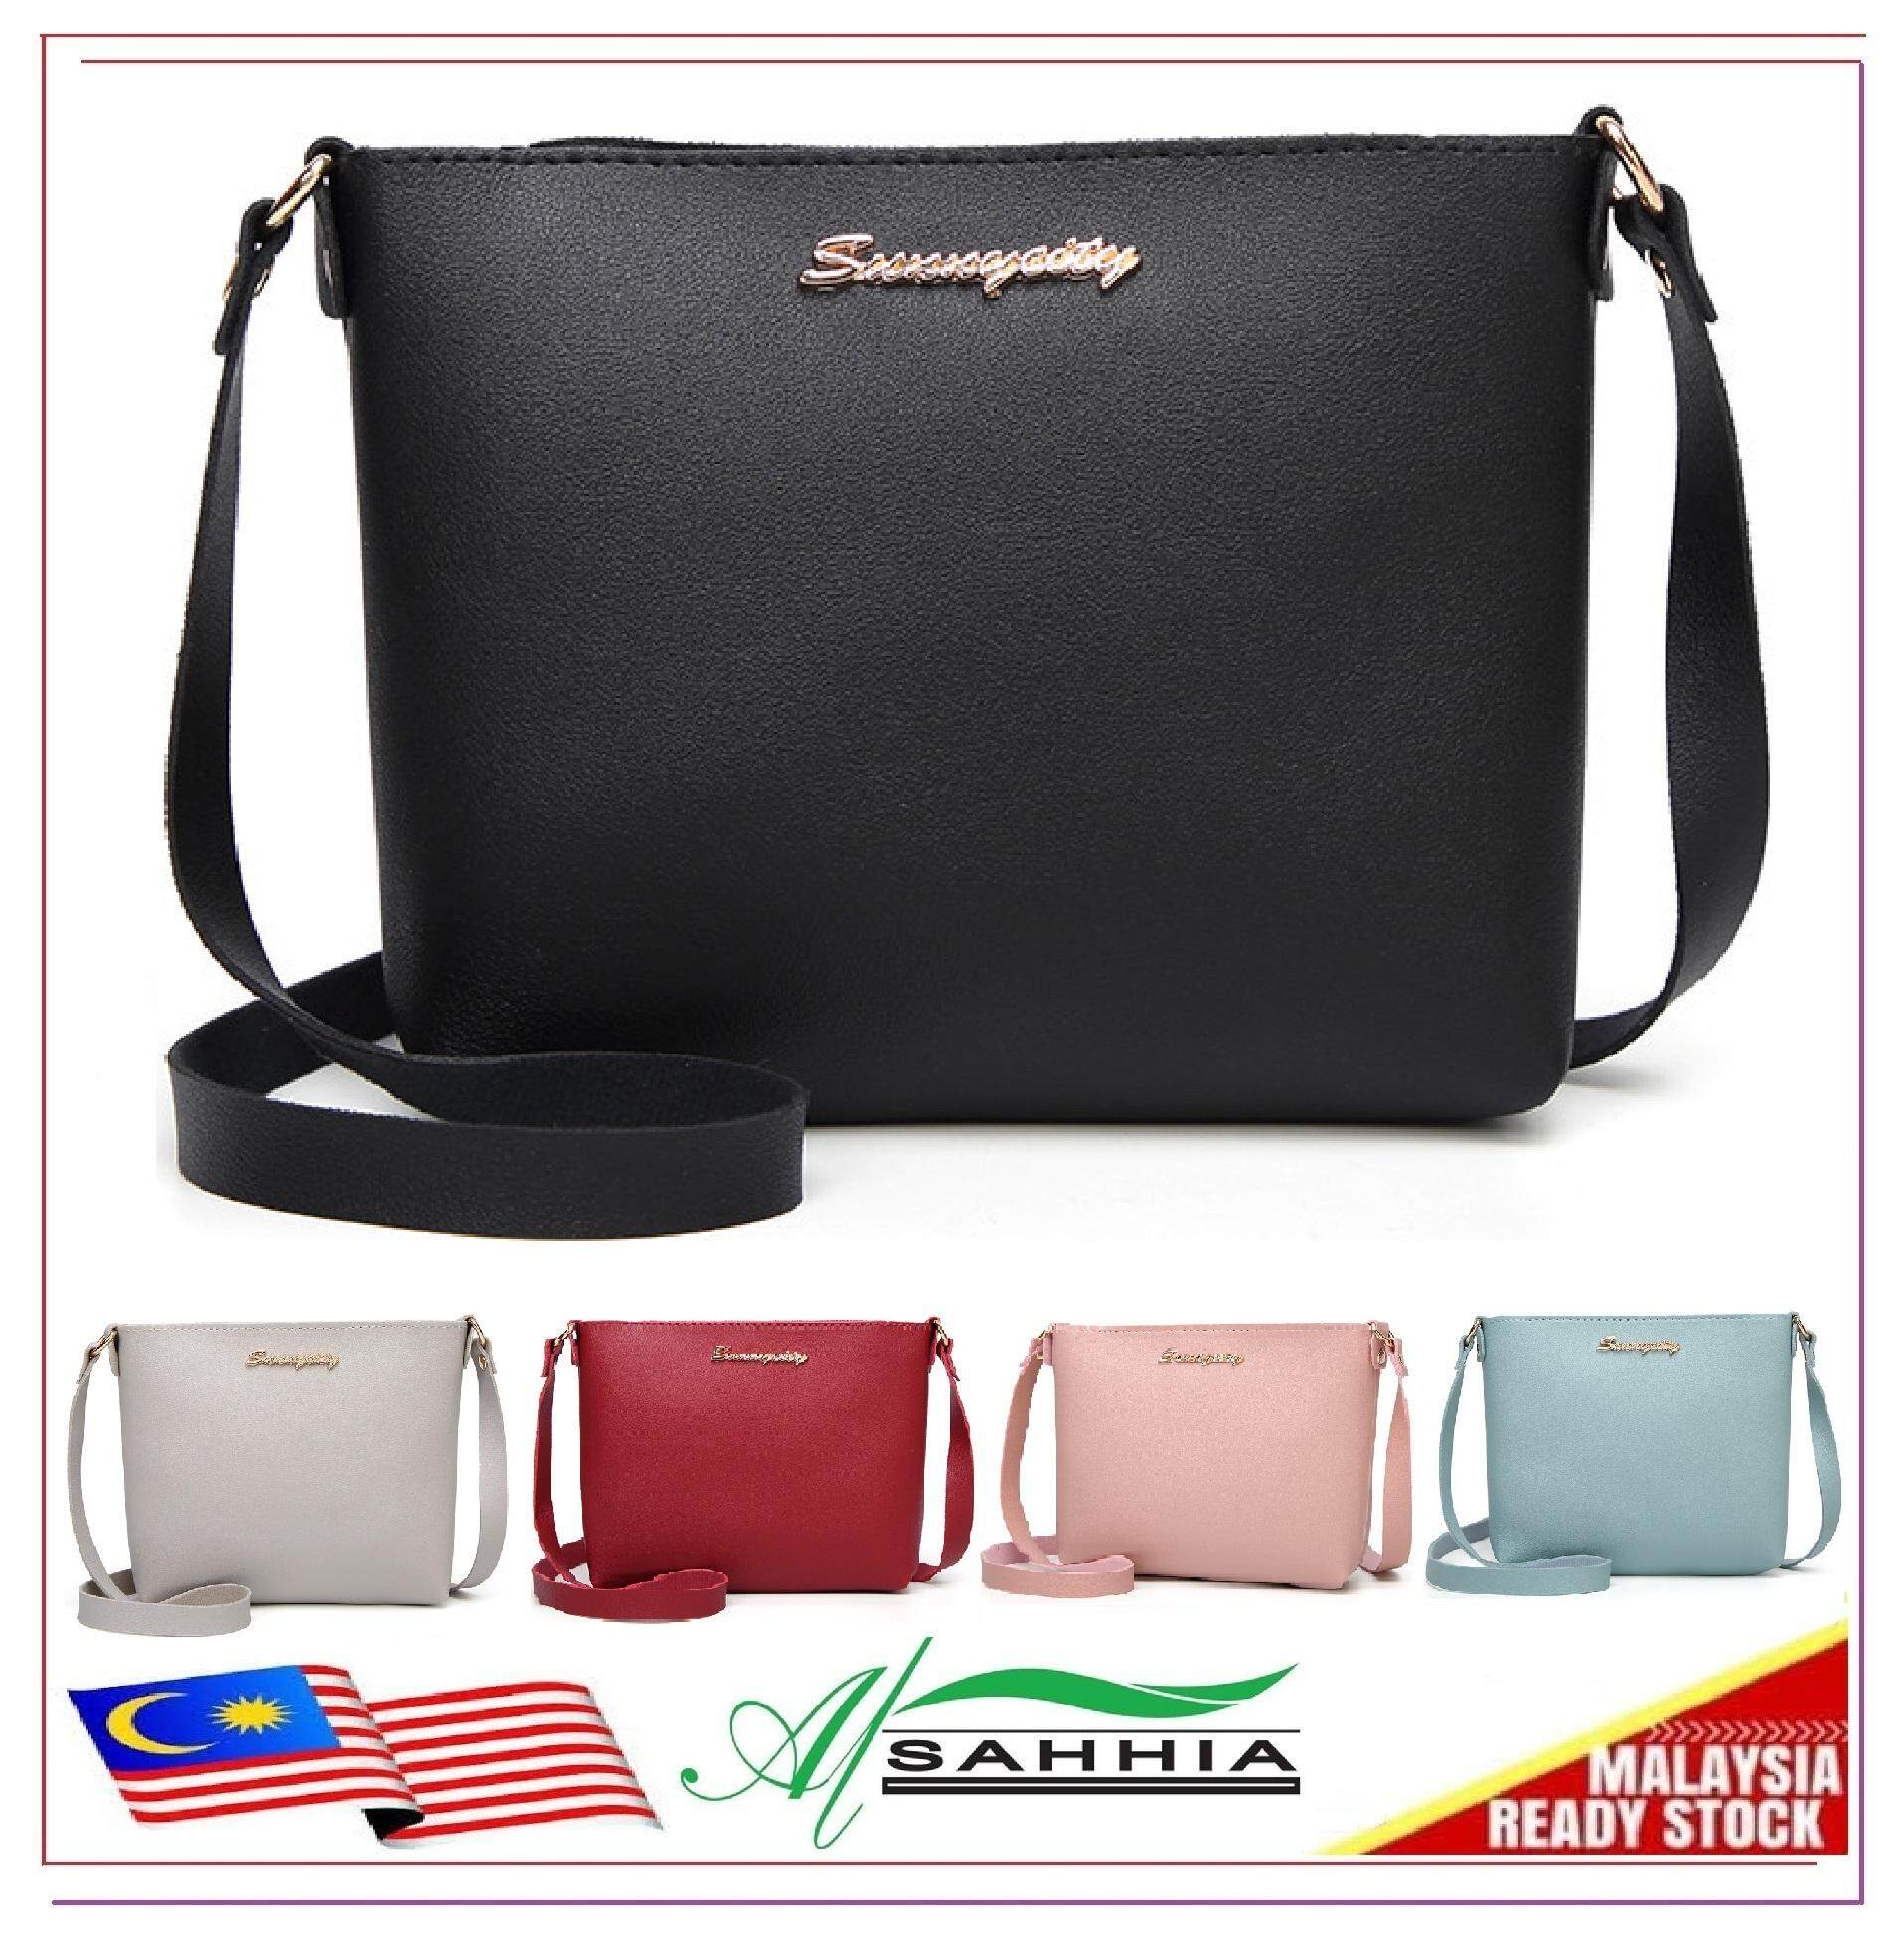 2ebb38d74a Latest Women s Bags Only on Lazada Malaysia!